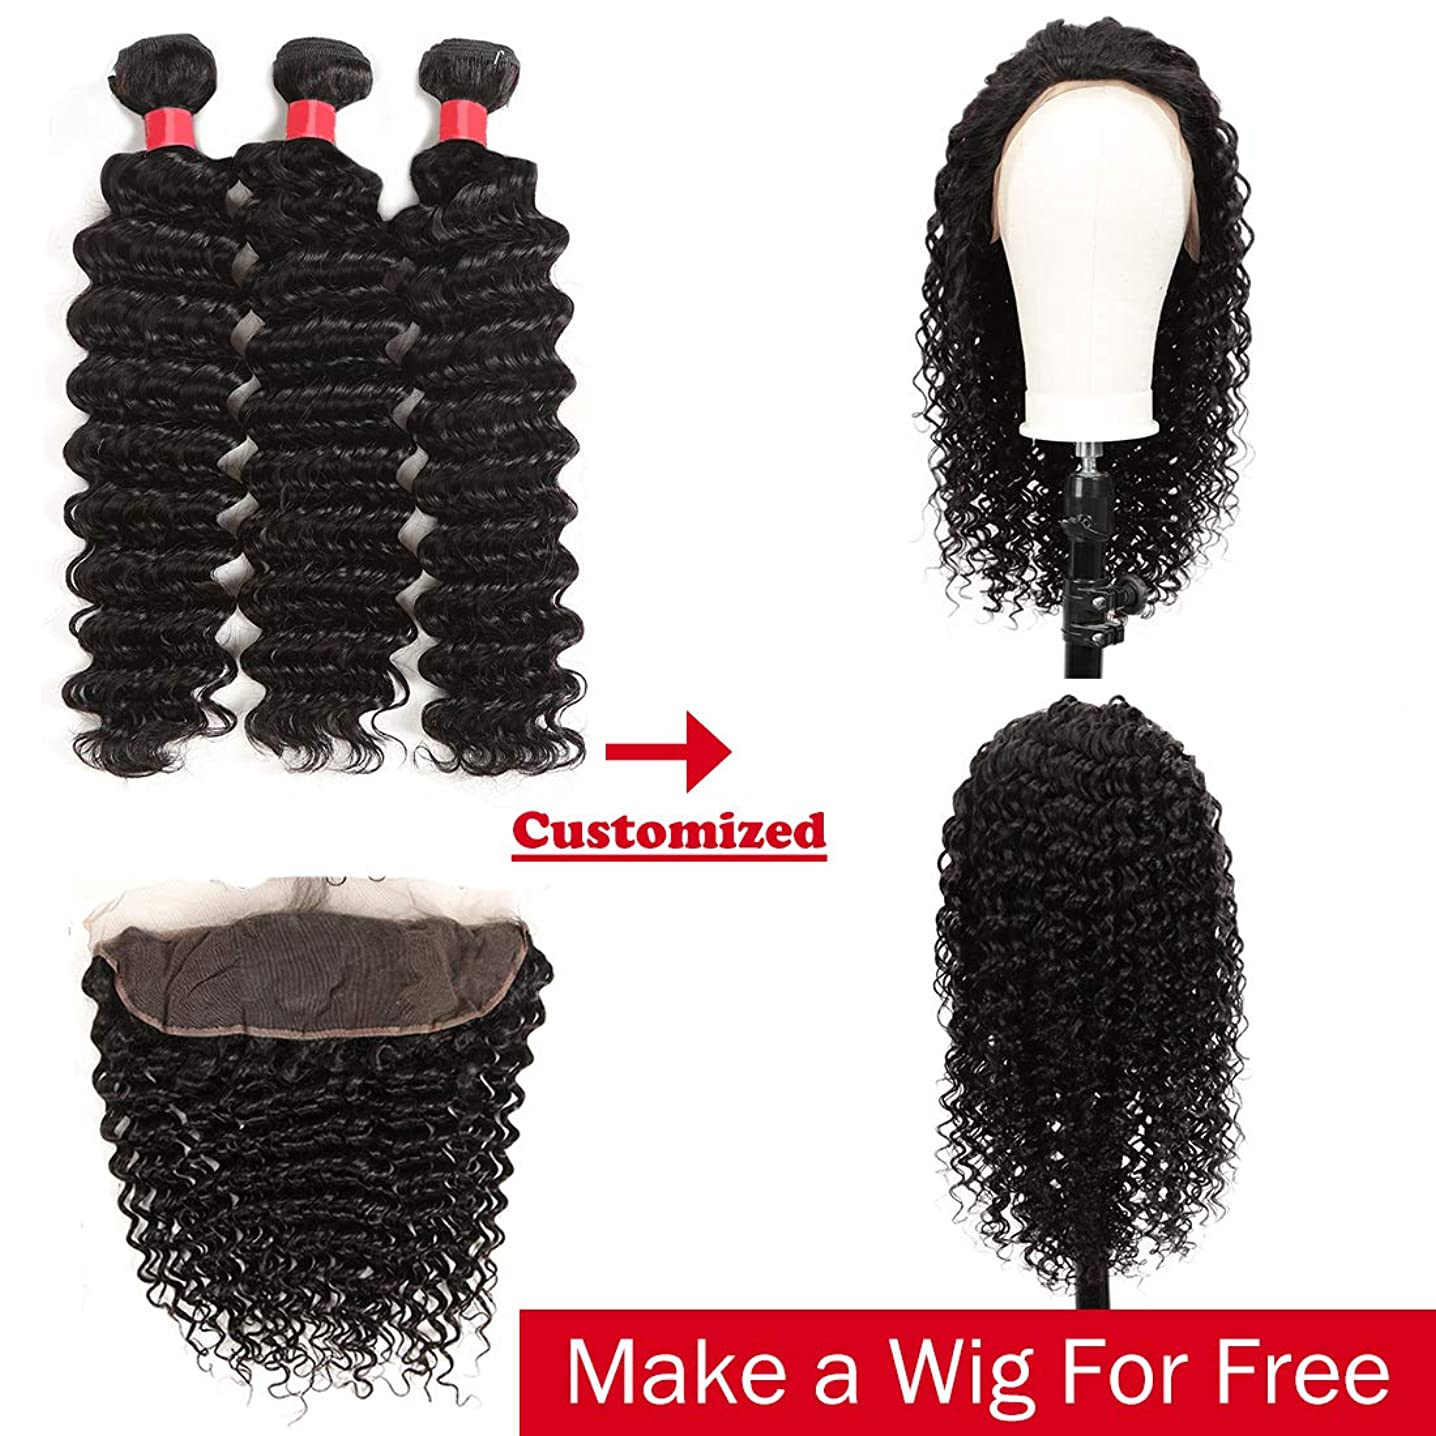 DéBUT custom-made human hair Lace front wigs by Deep Wave Brazilian hair Bundles with 13 x 6 Lace frontal Closure with baby hair 10A Grade Virgin Remy Hair Natural Black